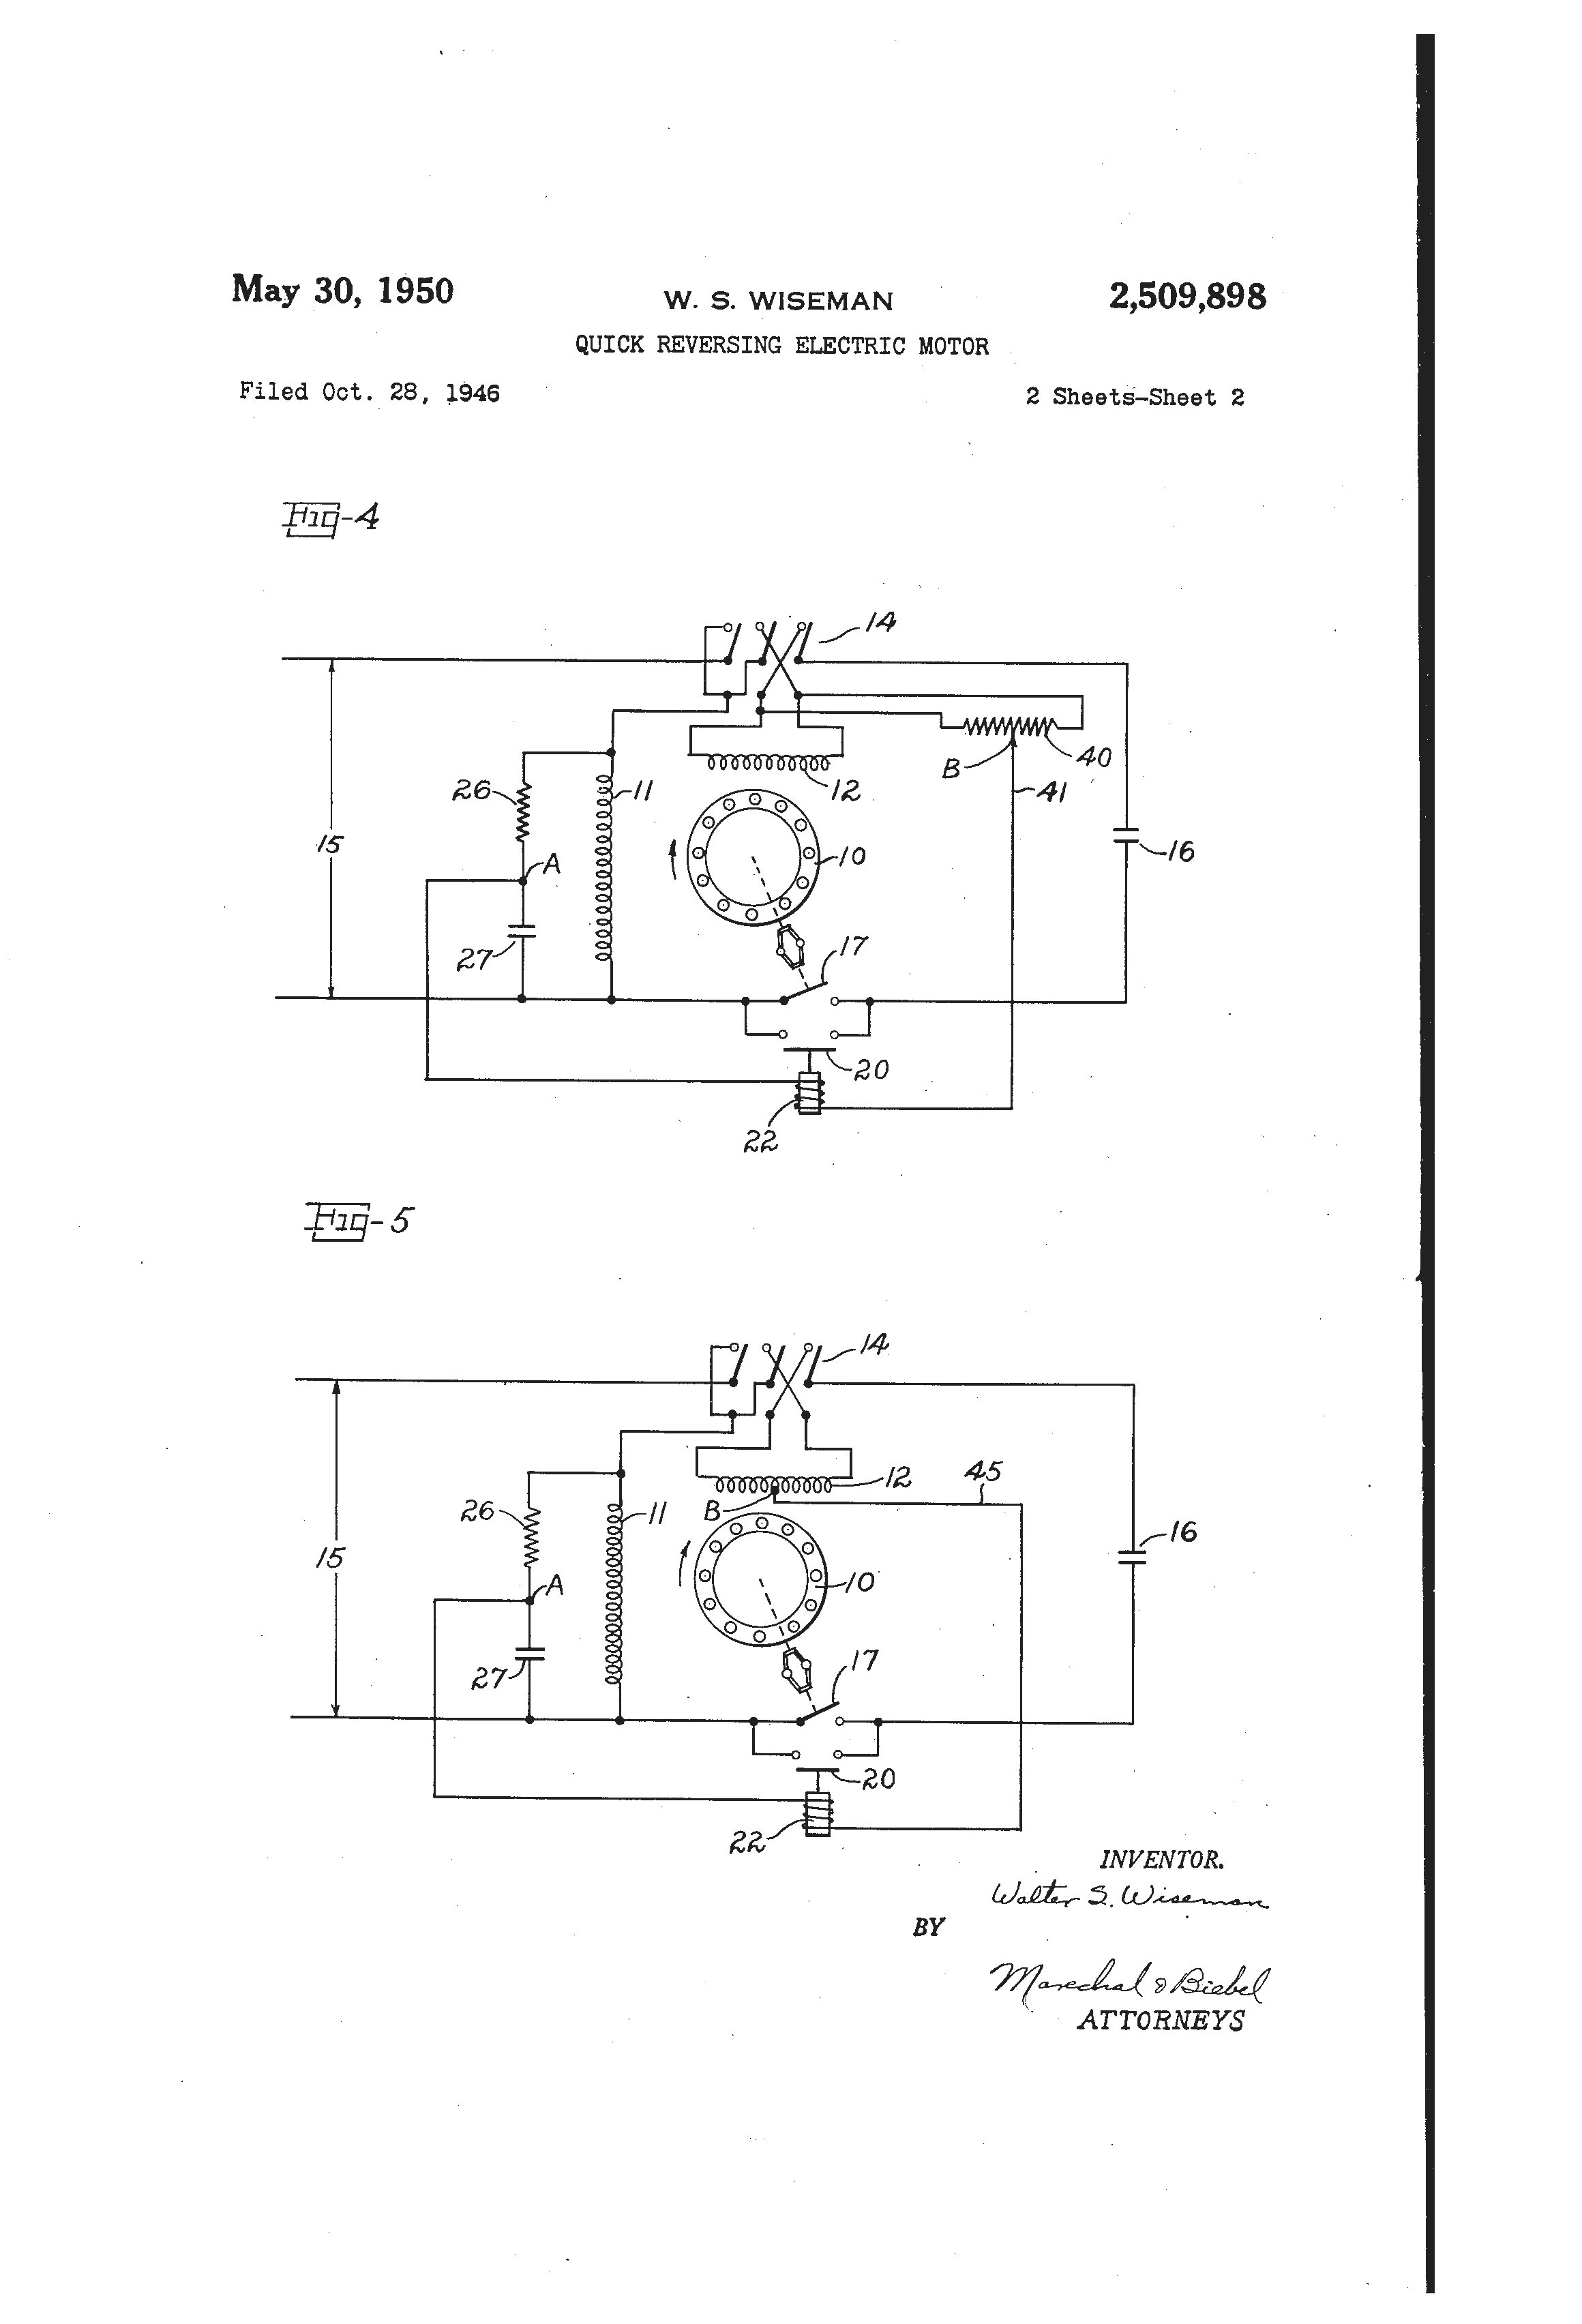 Baldor Electric Motor L L Wiring Diagrams on ao smith electric motors wiring diagrams, emerson electric motors wiring diagrams, 3 phase electric motor diagrams, baldor connection diagram, baldor motor model, delta electric motor wiring diagrams, baldor 220 volt wiring diagram, baldor motor schematic, baldor industrial motor, marathon electric motor wiring diagrams, baldor motor capacitor chart, baldor motor parts diagram, baldor vfd wiring diagram, baldor wiring-diagram 56c 115 230, baldor grinder wiring-diagram, single phase capacitor motor diagrams, toshiba electric motor wiring diagrams, baldor single phase motor wiring, electric fan motor wiring diagrams, general electric motor wiring diagrams,